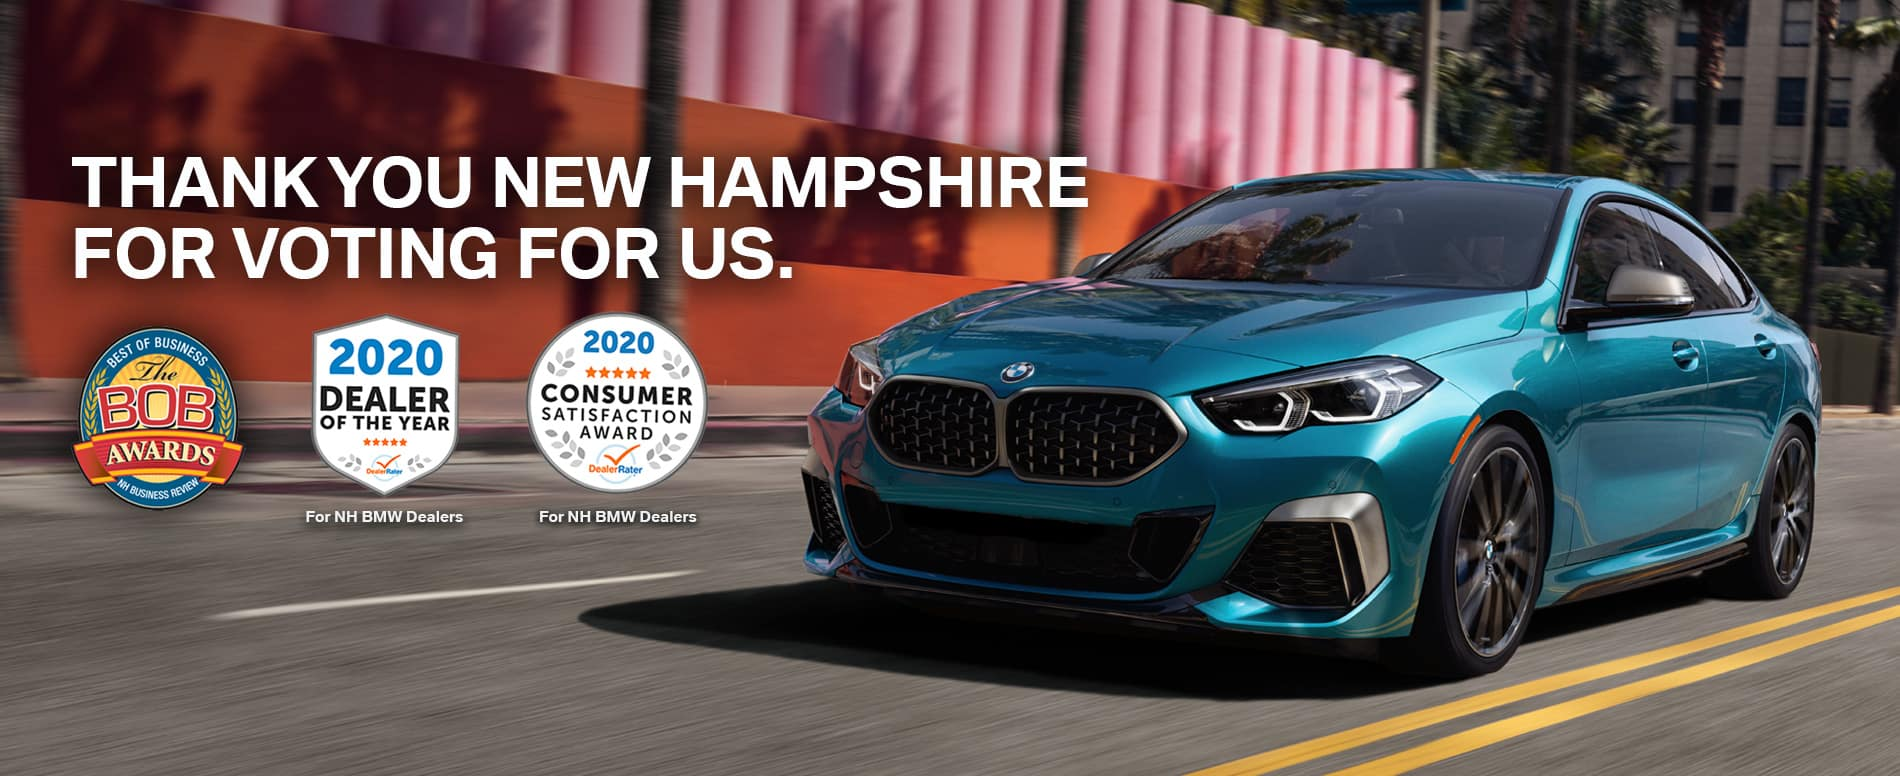 Tulley Bmw Of Manchester Pre Owned Bmw Dealer In Manchester Nh